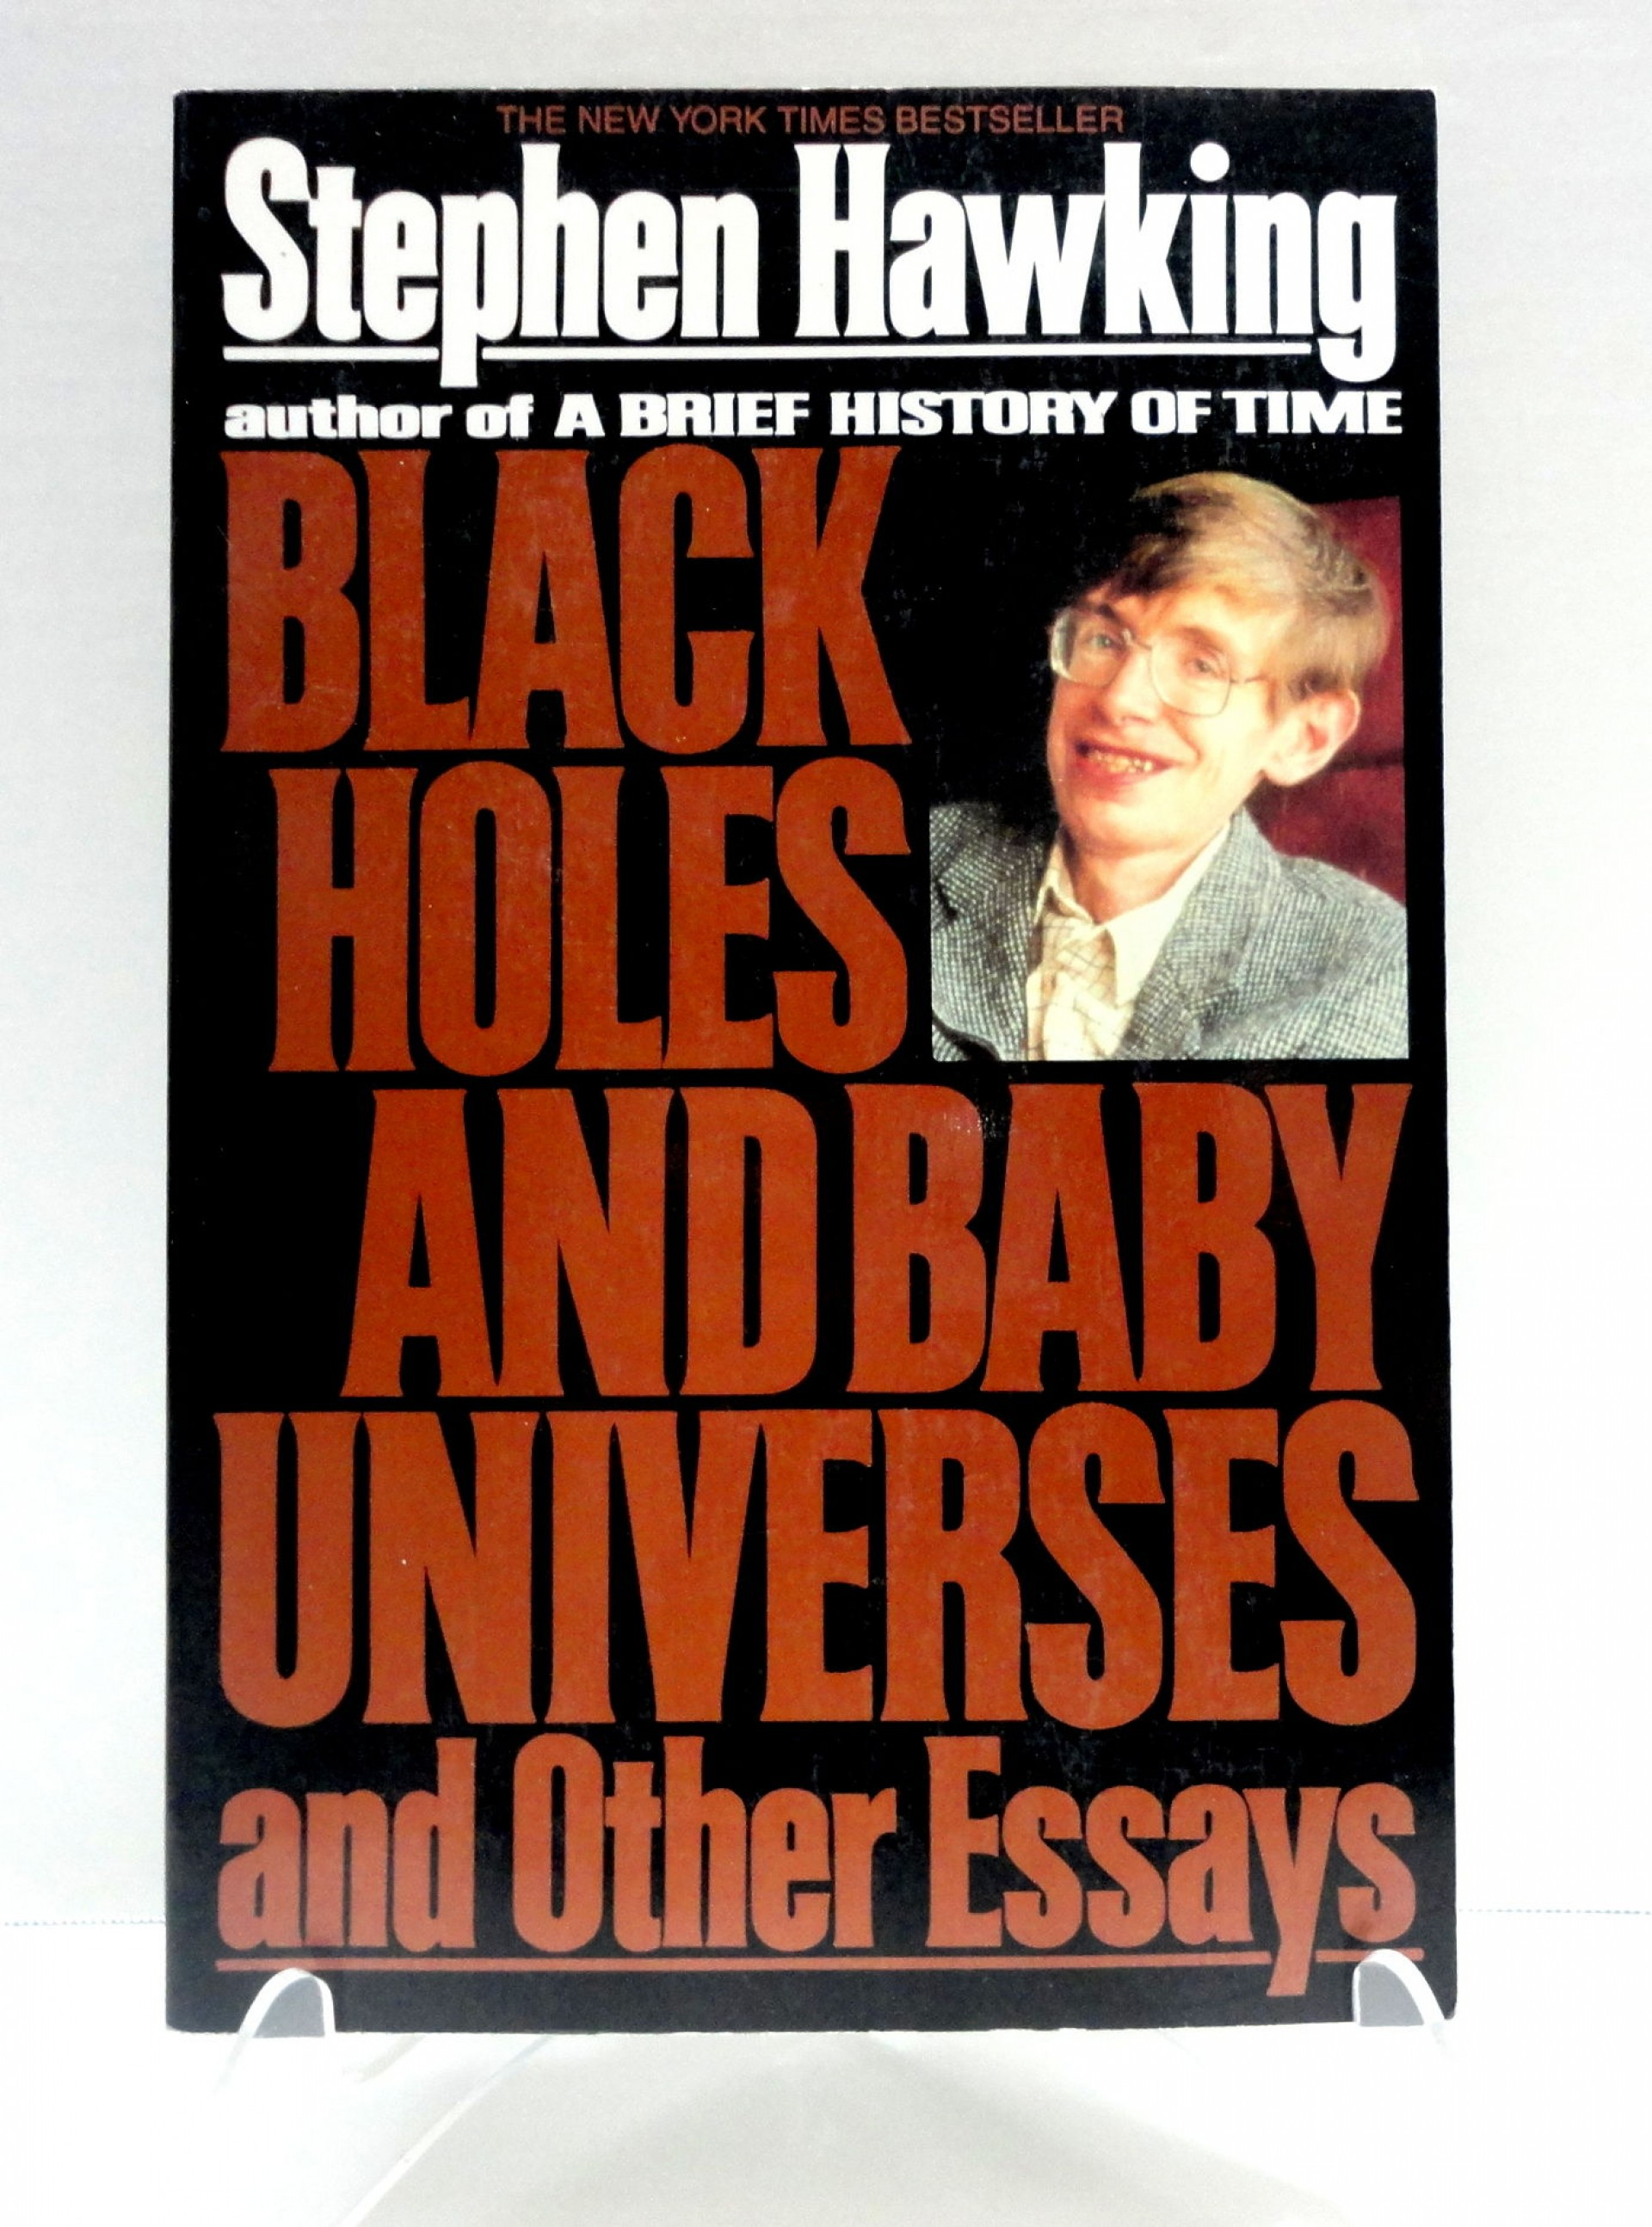 012 Essay Example X Black Holes And Baby Universes Other Unique Essays Review Ebook Free Download Amazon 1920